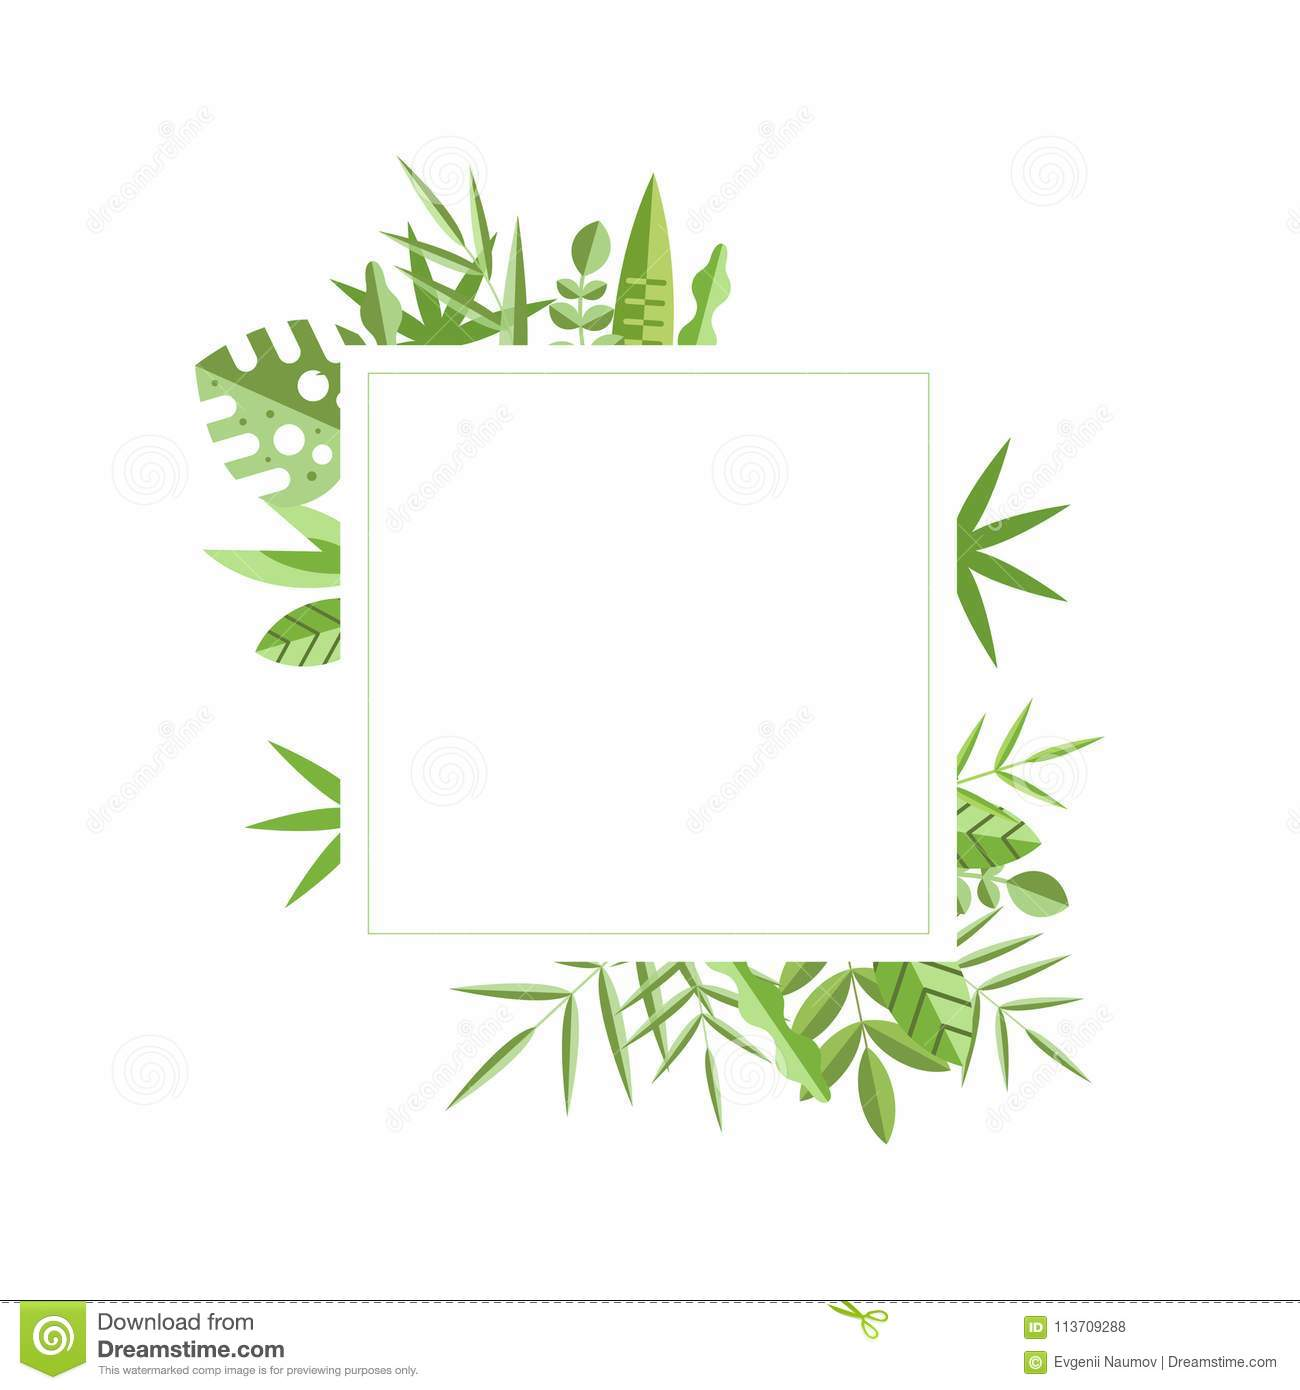 White Square Frame With Different Green Leaves On Background Natural Border Graphic Element For Wedding Invitation Save The Date Or Mobile Application